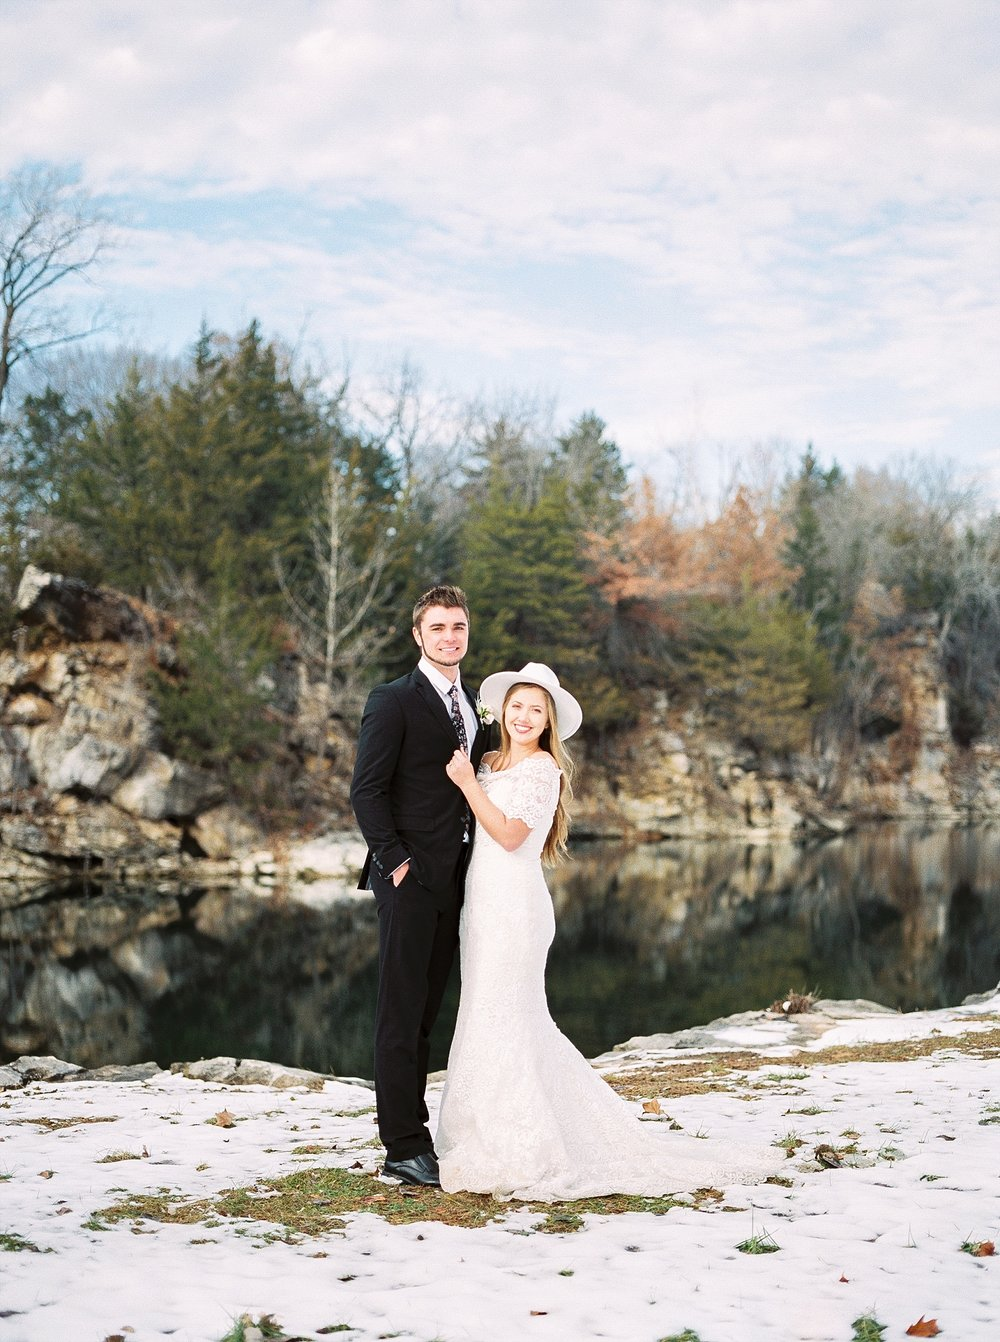 Snowy Winter Wedding at Wildcliff Events Lake With Earthy Jewel Tones and Organic Refined Style by Kelsi Kliethermes Photography Kansas City Missouri Wedding Photographer_0160.jpg